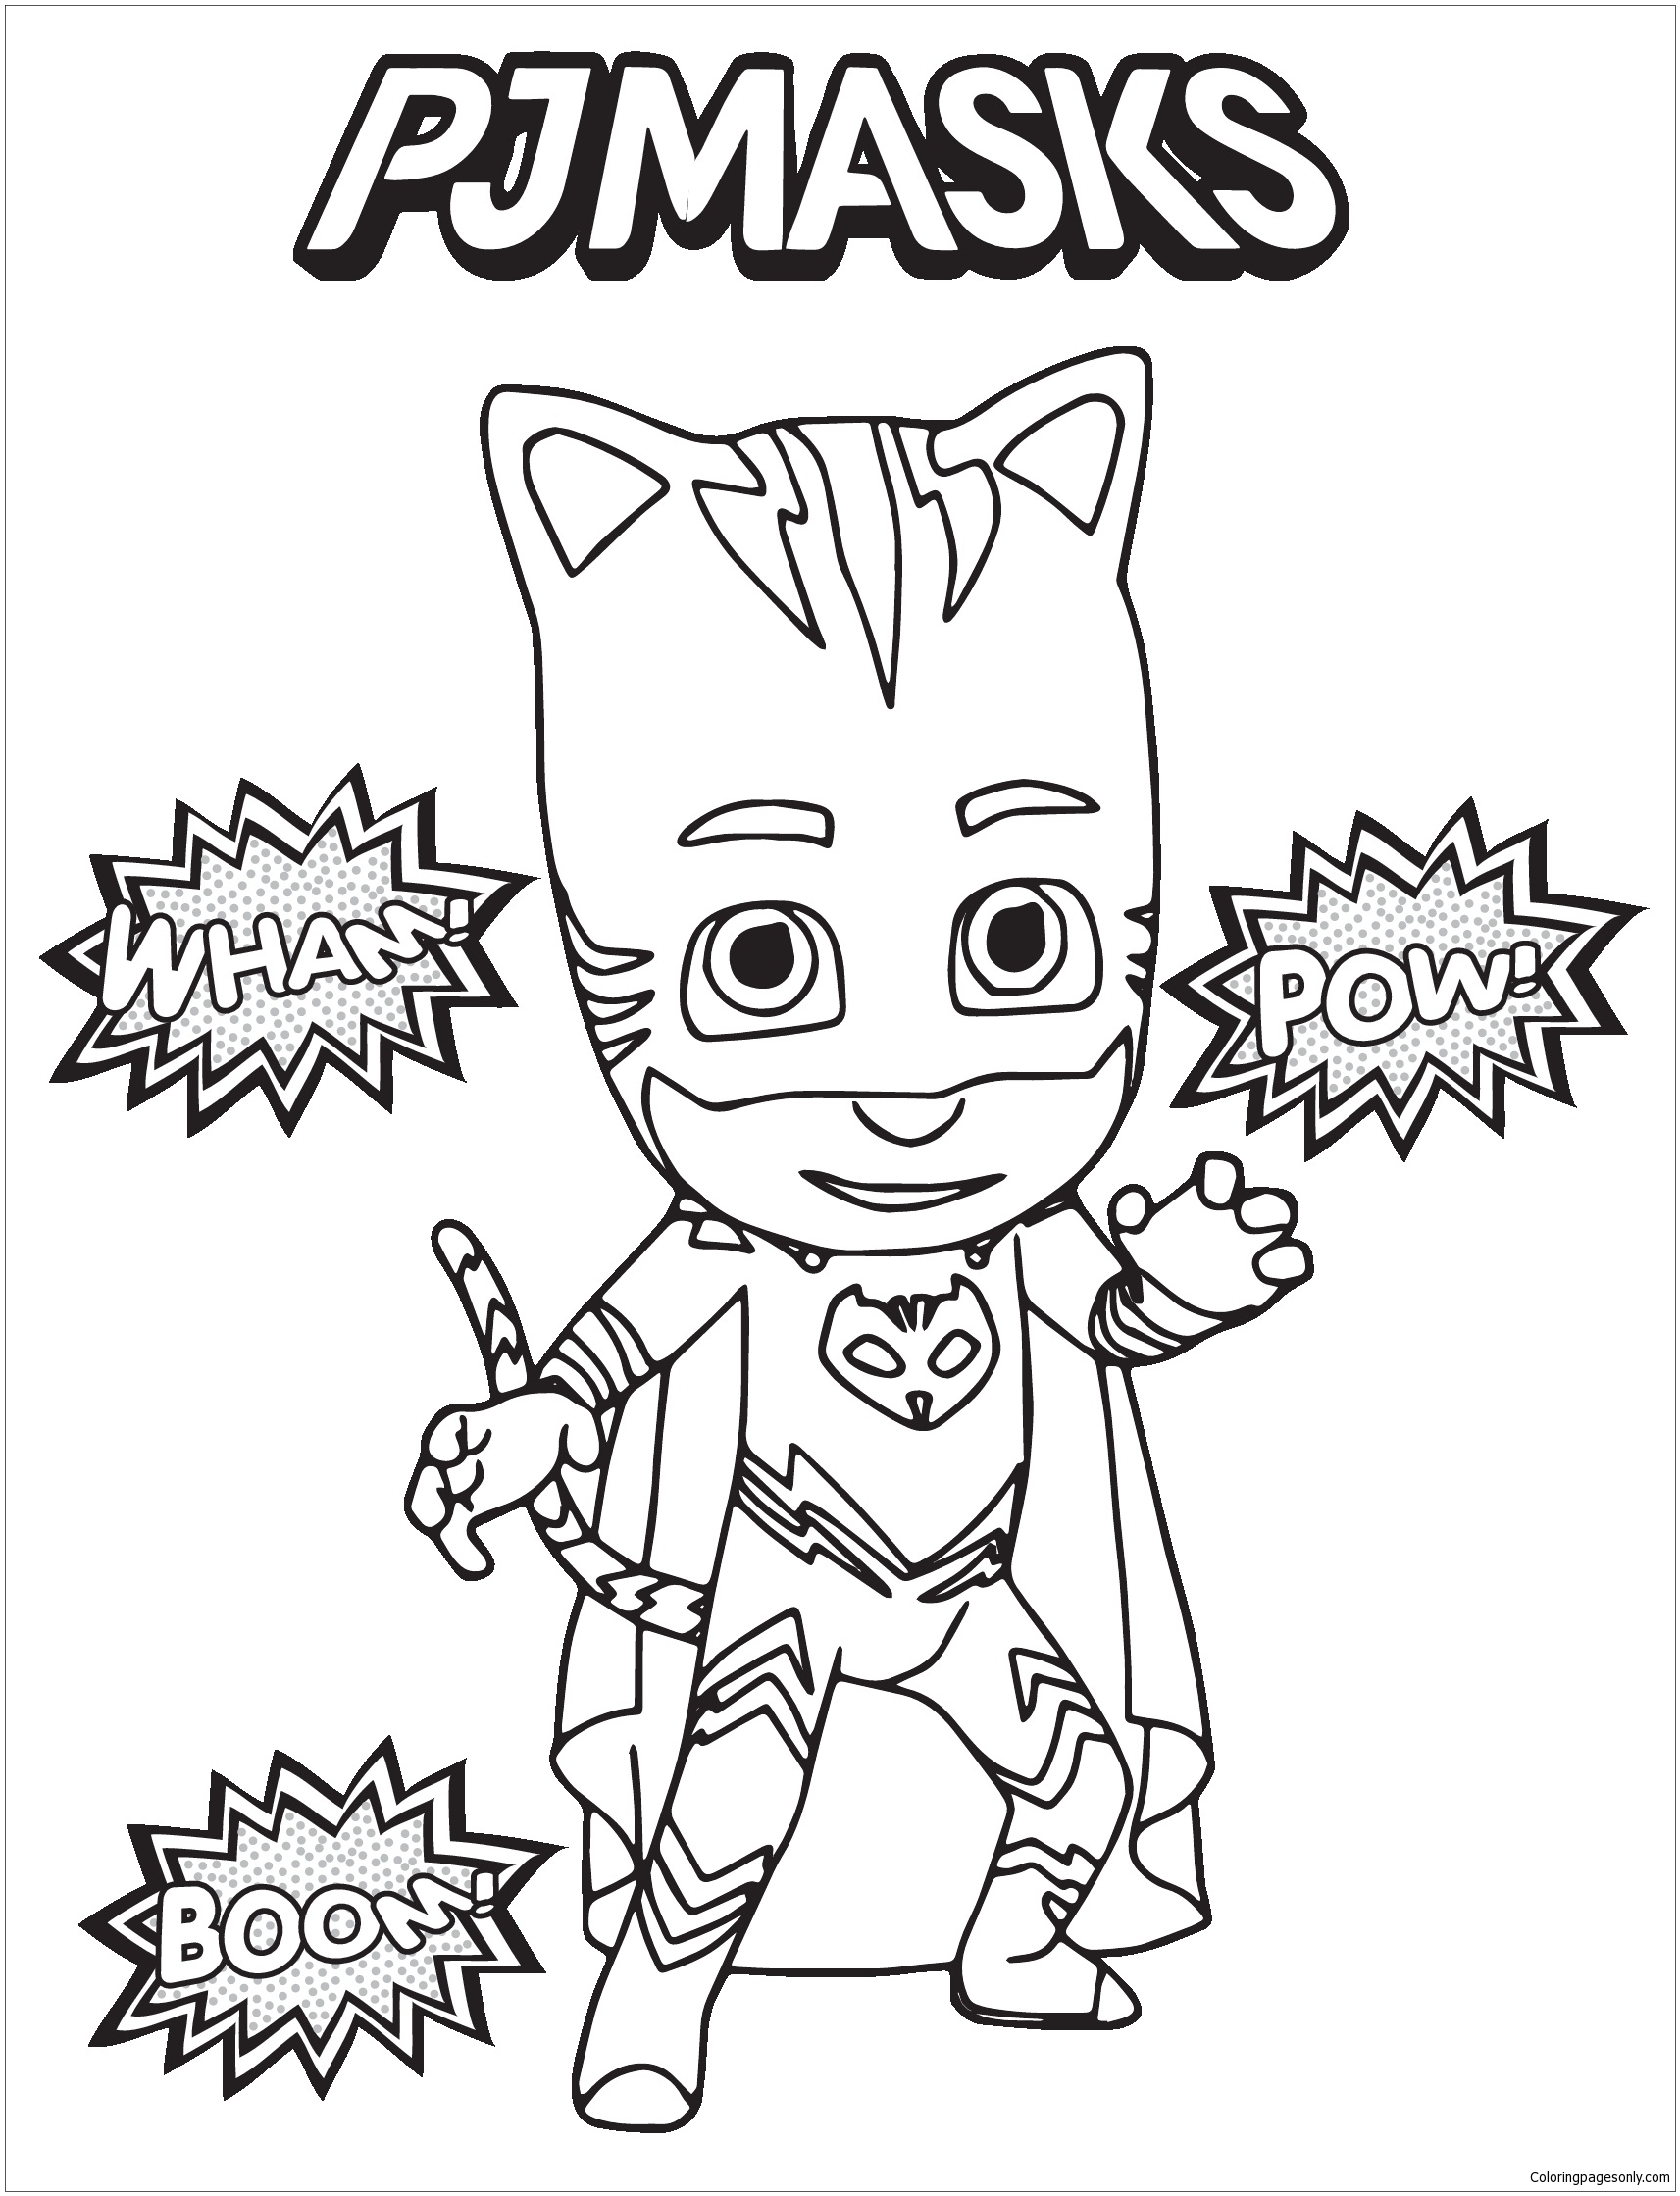 - Pj Masks 2 Coloring Page - Free Coloring Pages Online